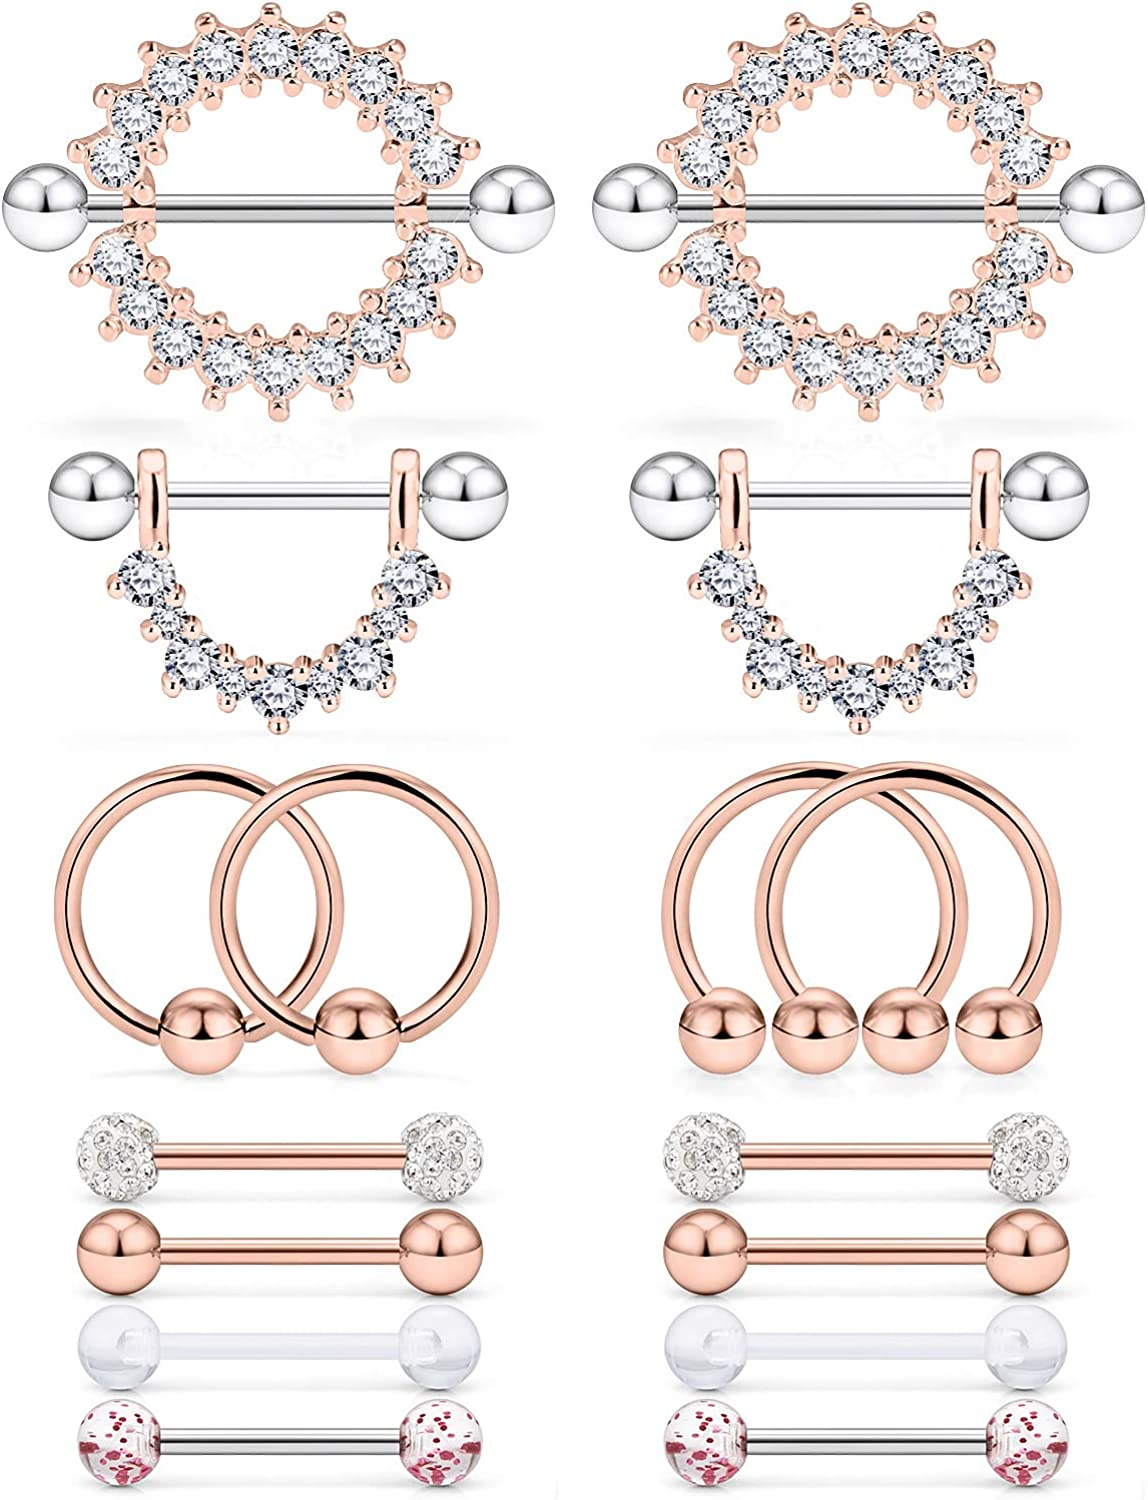 Cisyozi 8 Pairs 16G 14G Stainless Steel Screw Nipple Tongue Shield Ring Barbell Body Piercing Jewelry Retainer 9/16 Inch 14mm